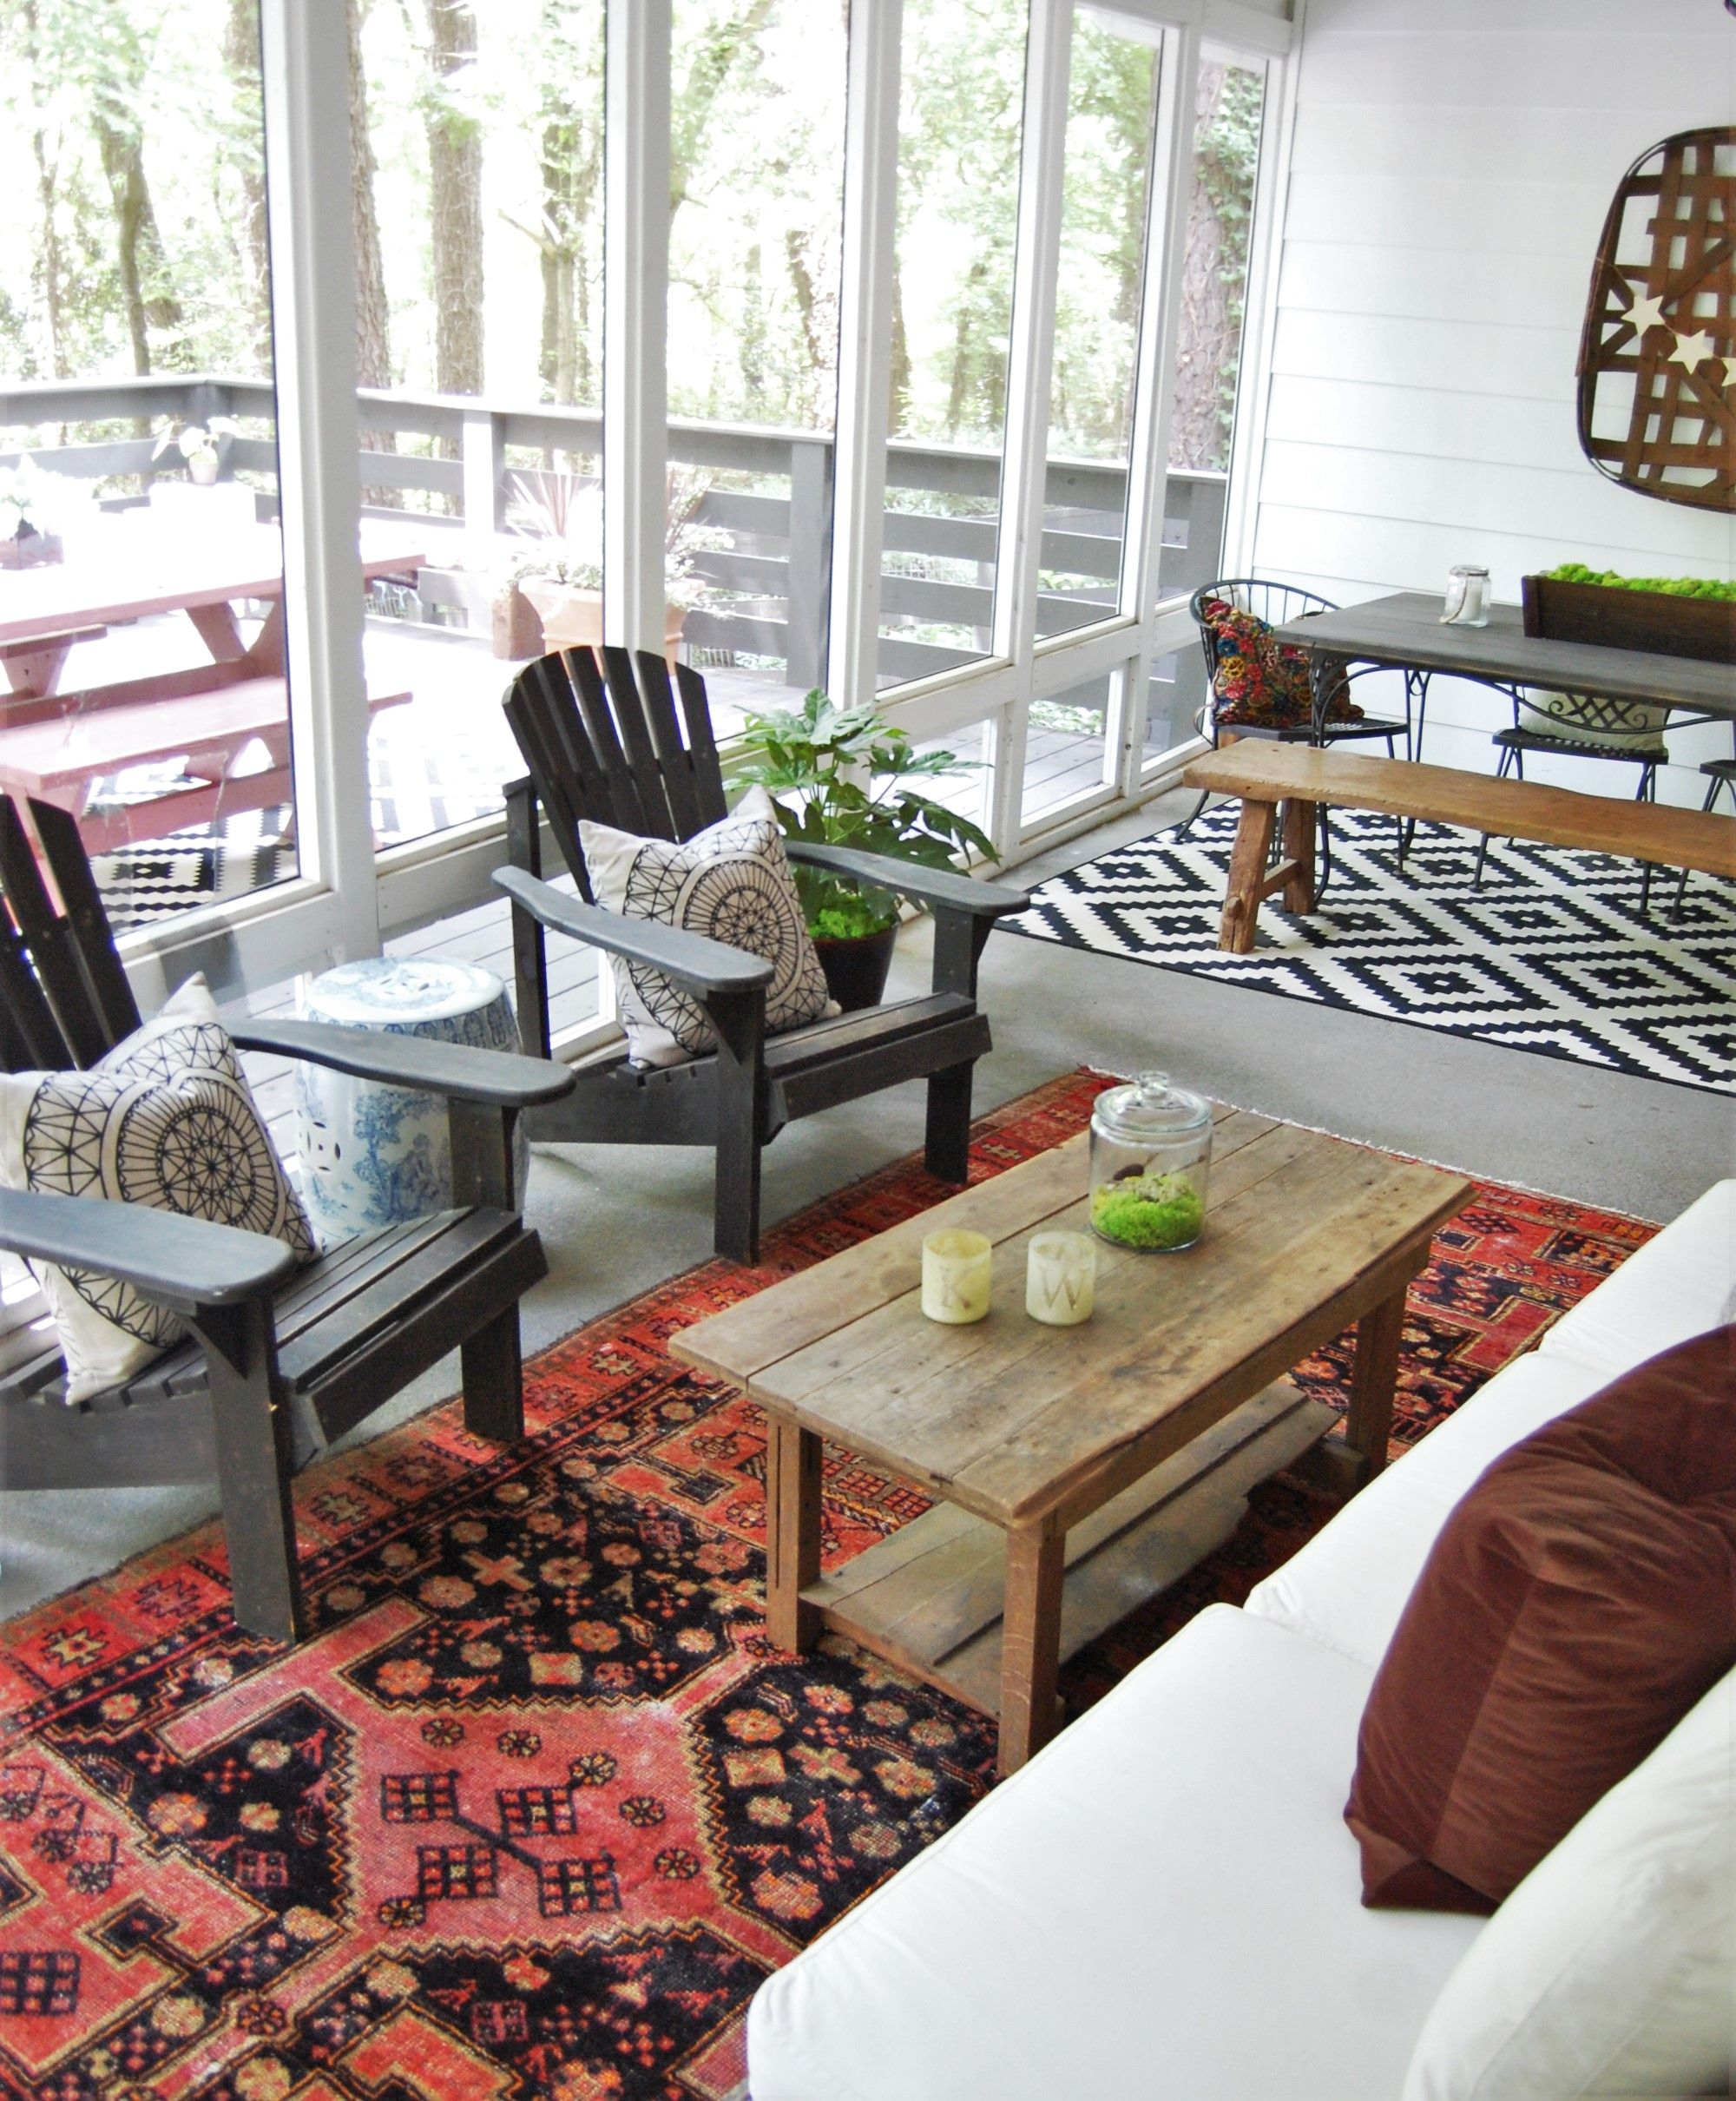 Eclectic Global Boho Screened Porch Decor Design With Turkish Rug Tobacco  Basket Adirondack Chairs And IKEA Outdoor Rug